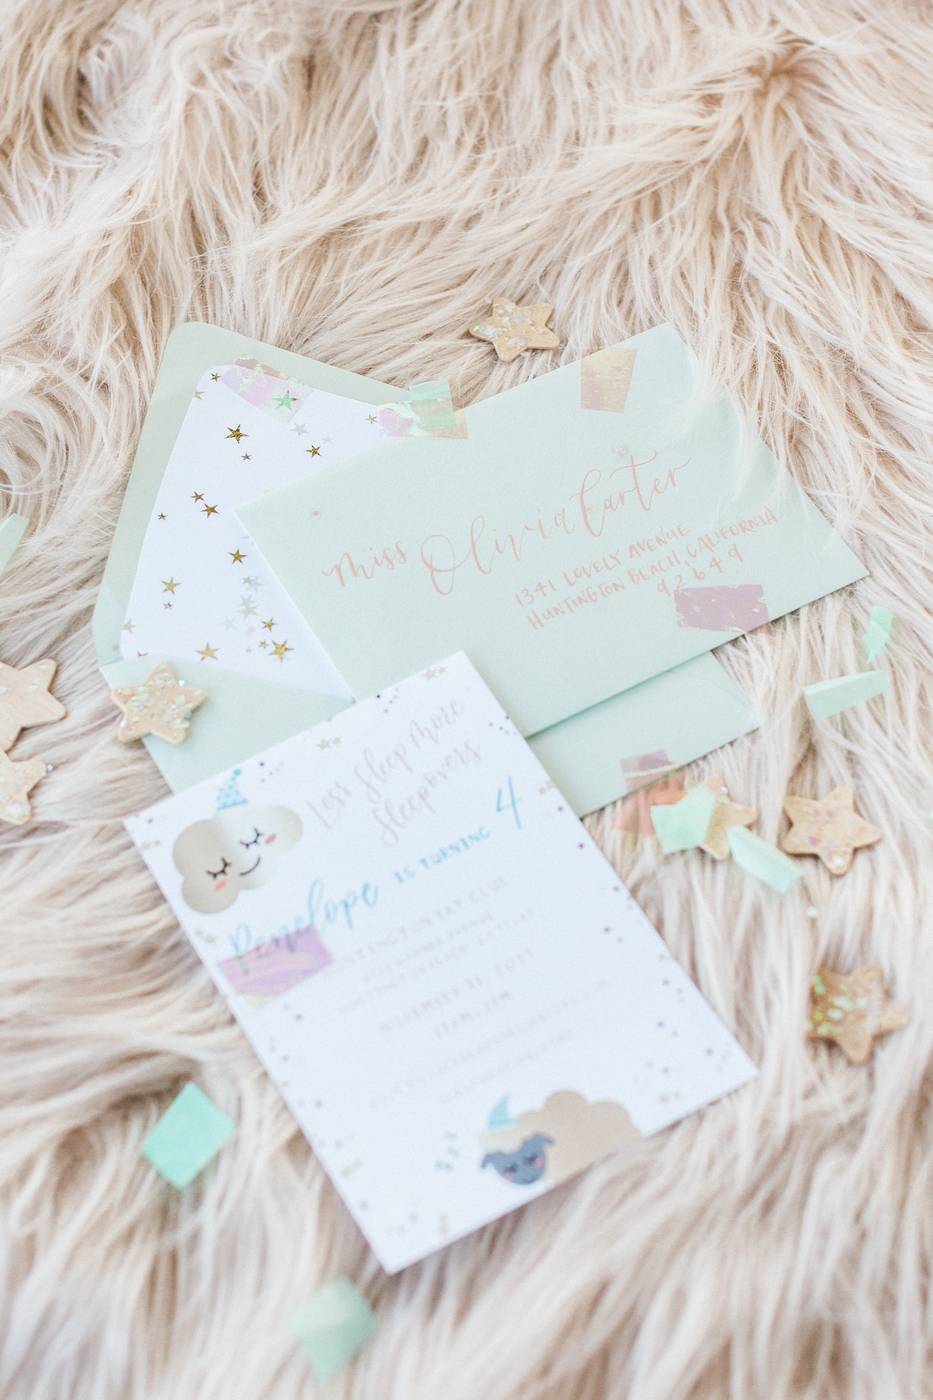 Ragi and Amanda | Pirouette Paper Calligraphy and Design | Penelope Pots Floral Design | Golden Arrow Events and Design | Elise Cakes | Sleepover Birthday Party